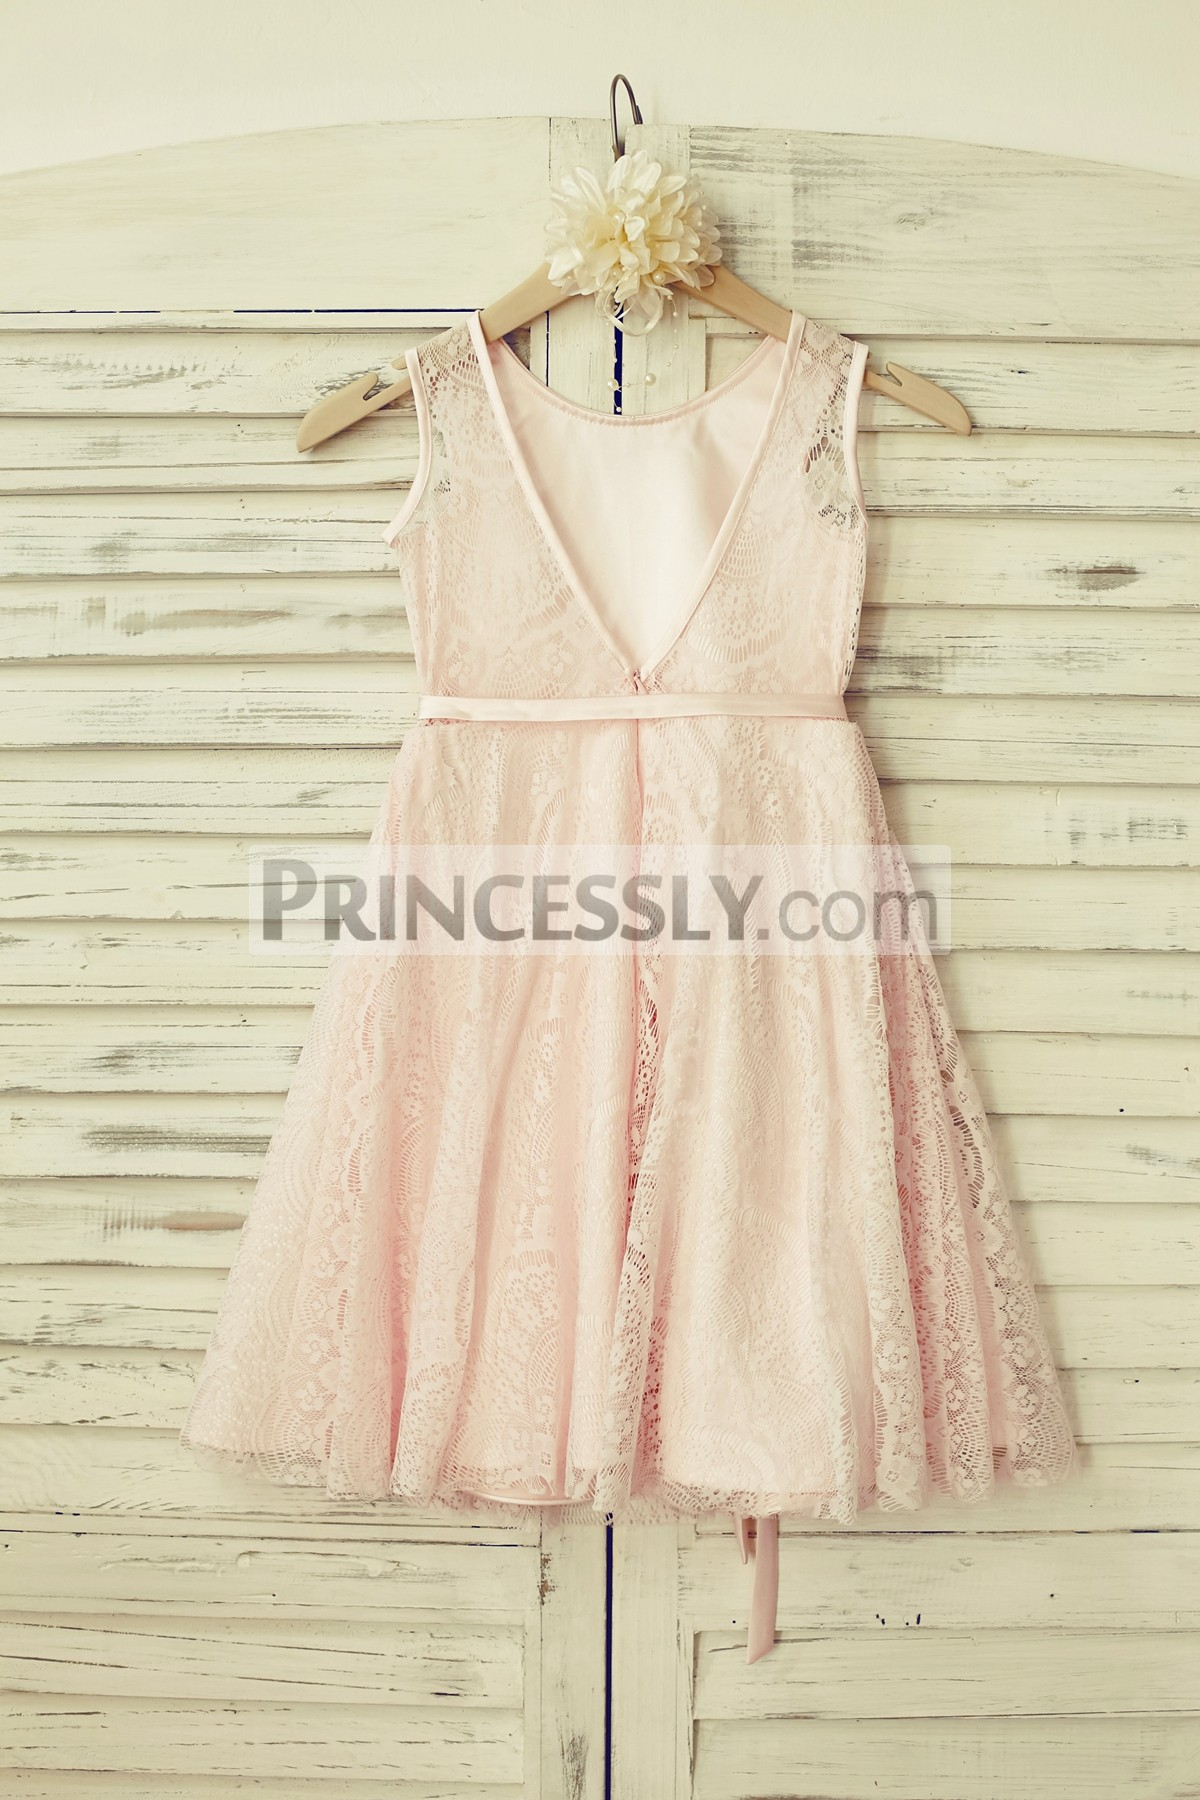 Deep V back lace wedding baby girl dress